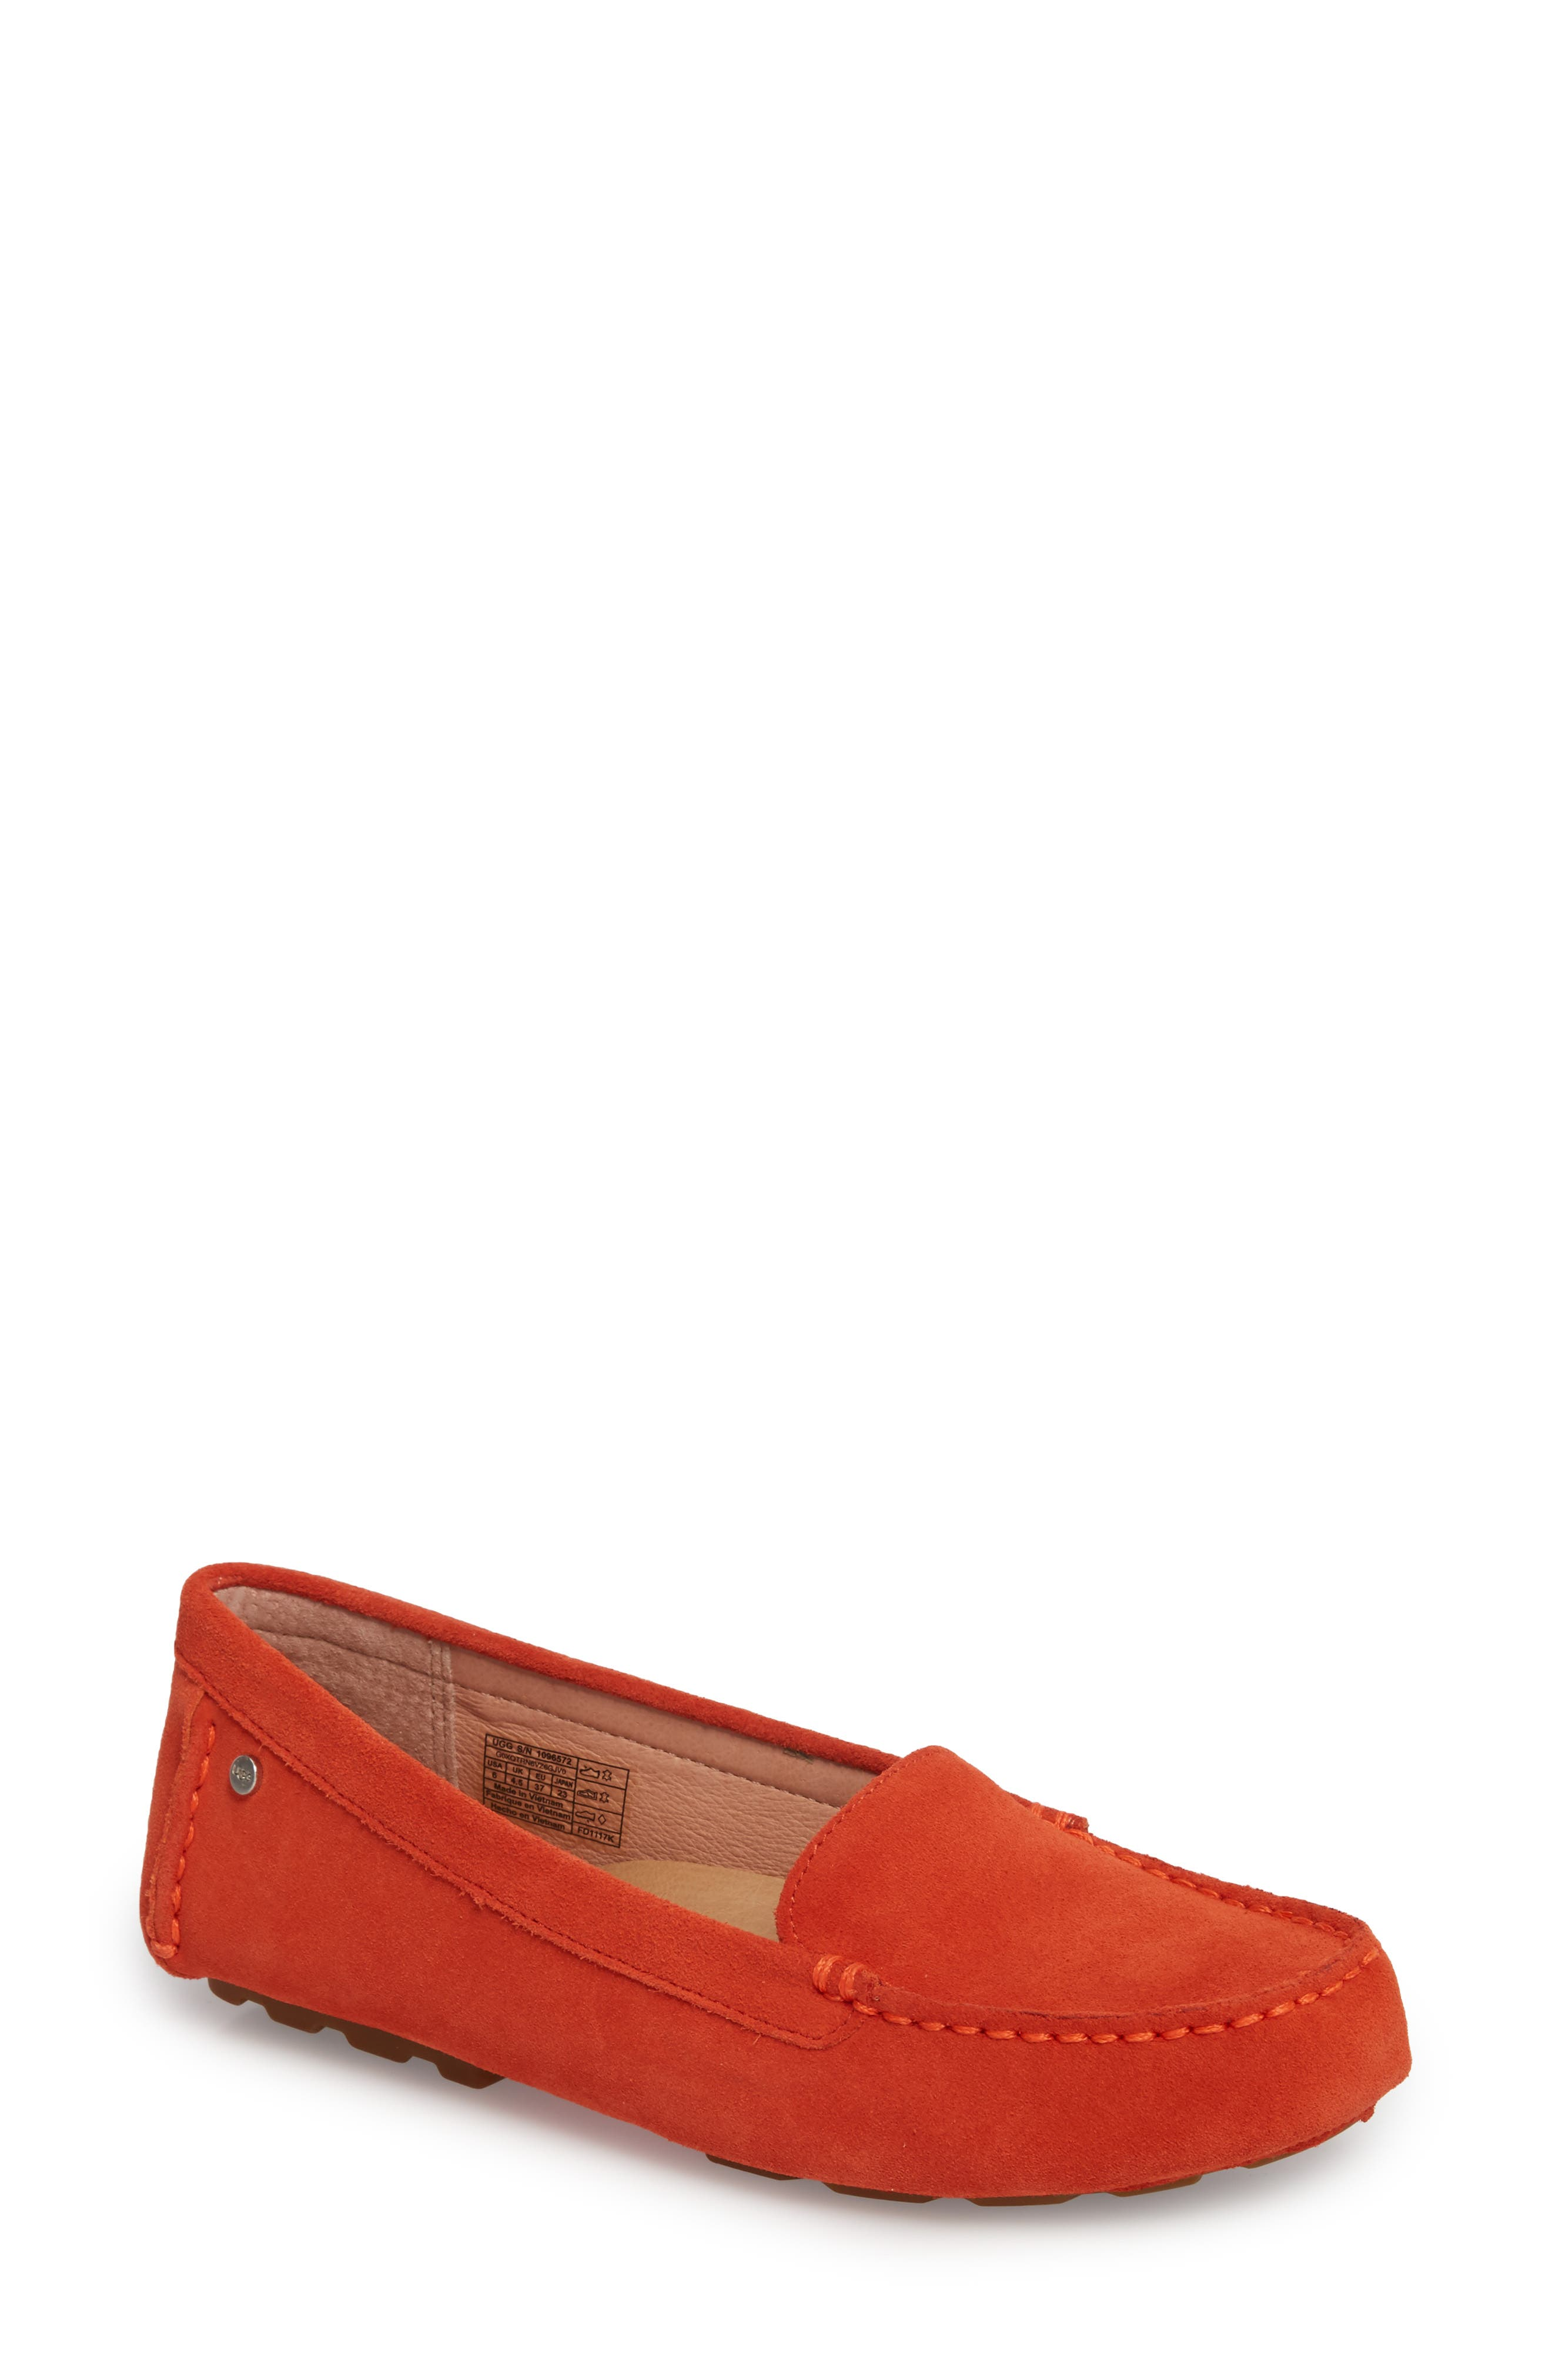 Milana Loafer,                             Main thumbnail 1, color,                             RED ORANGE SUEDE